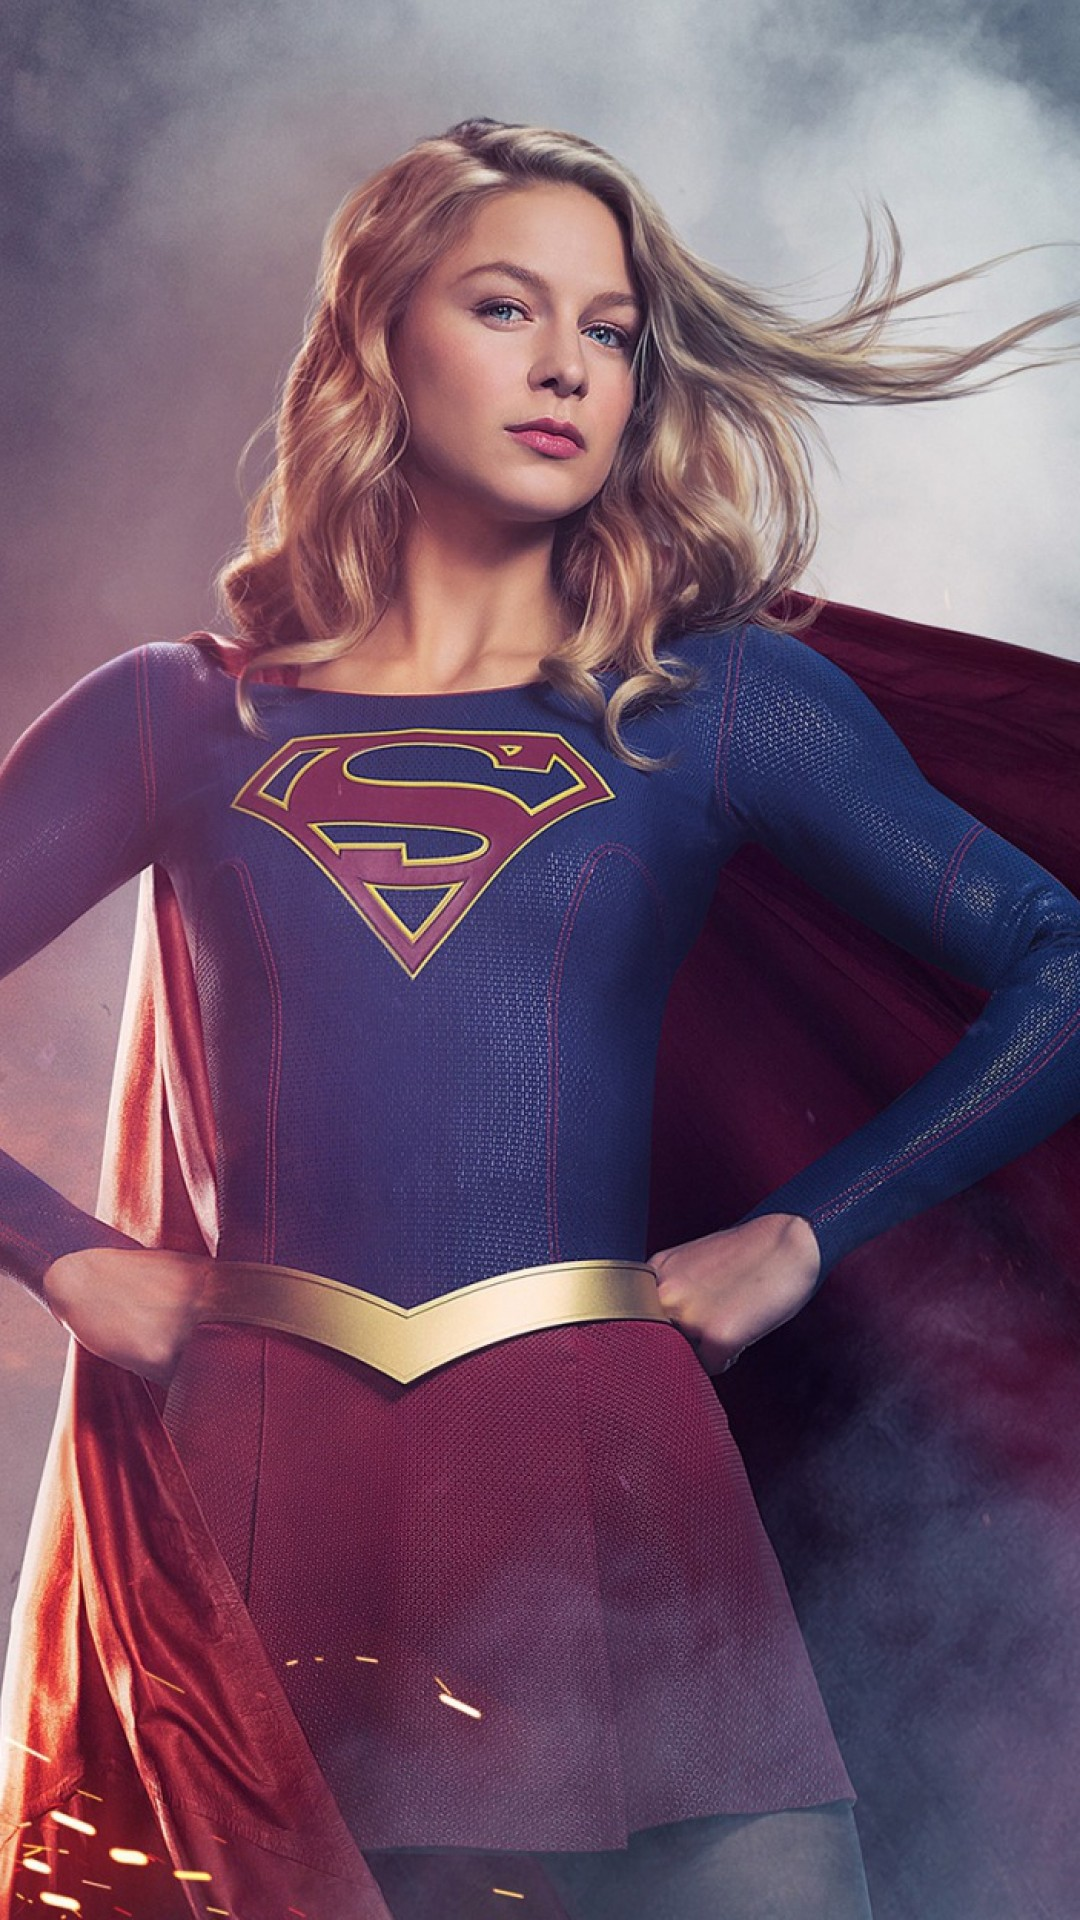 1080x1920 Download 1080x1920 Supergirl Season 3, Tv Series Wallpapers for ...